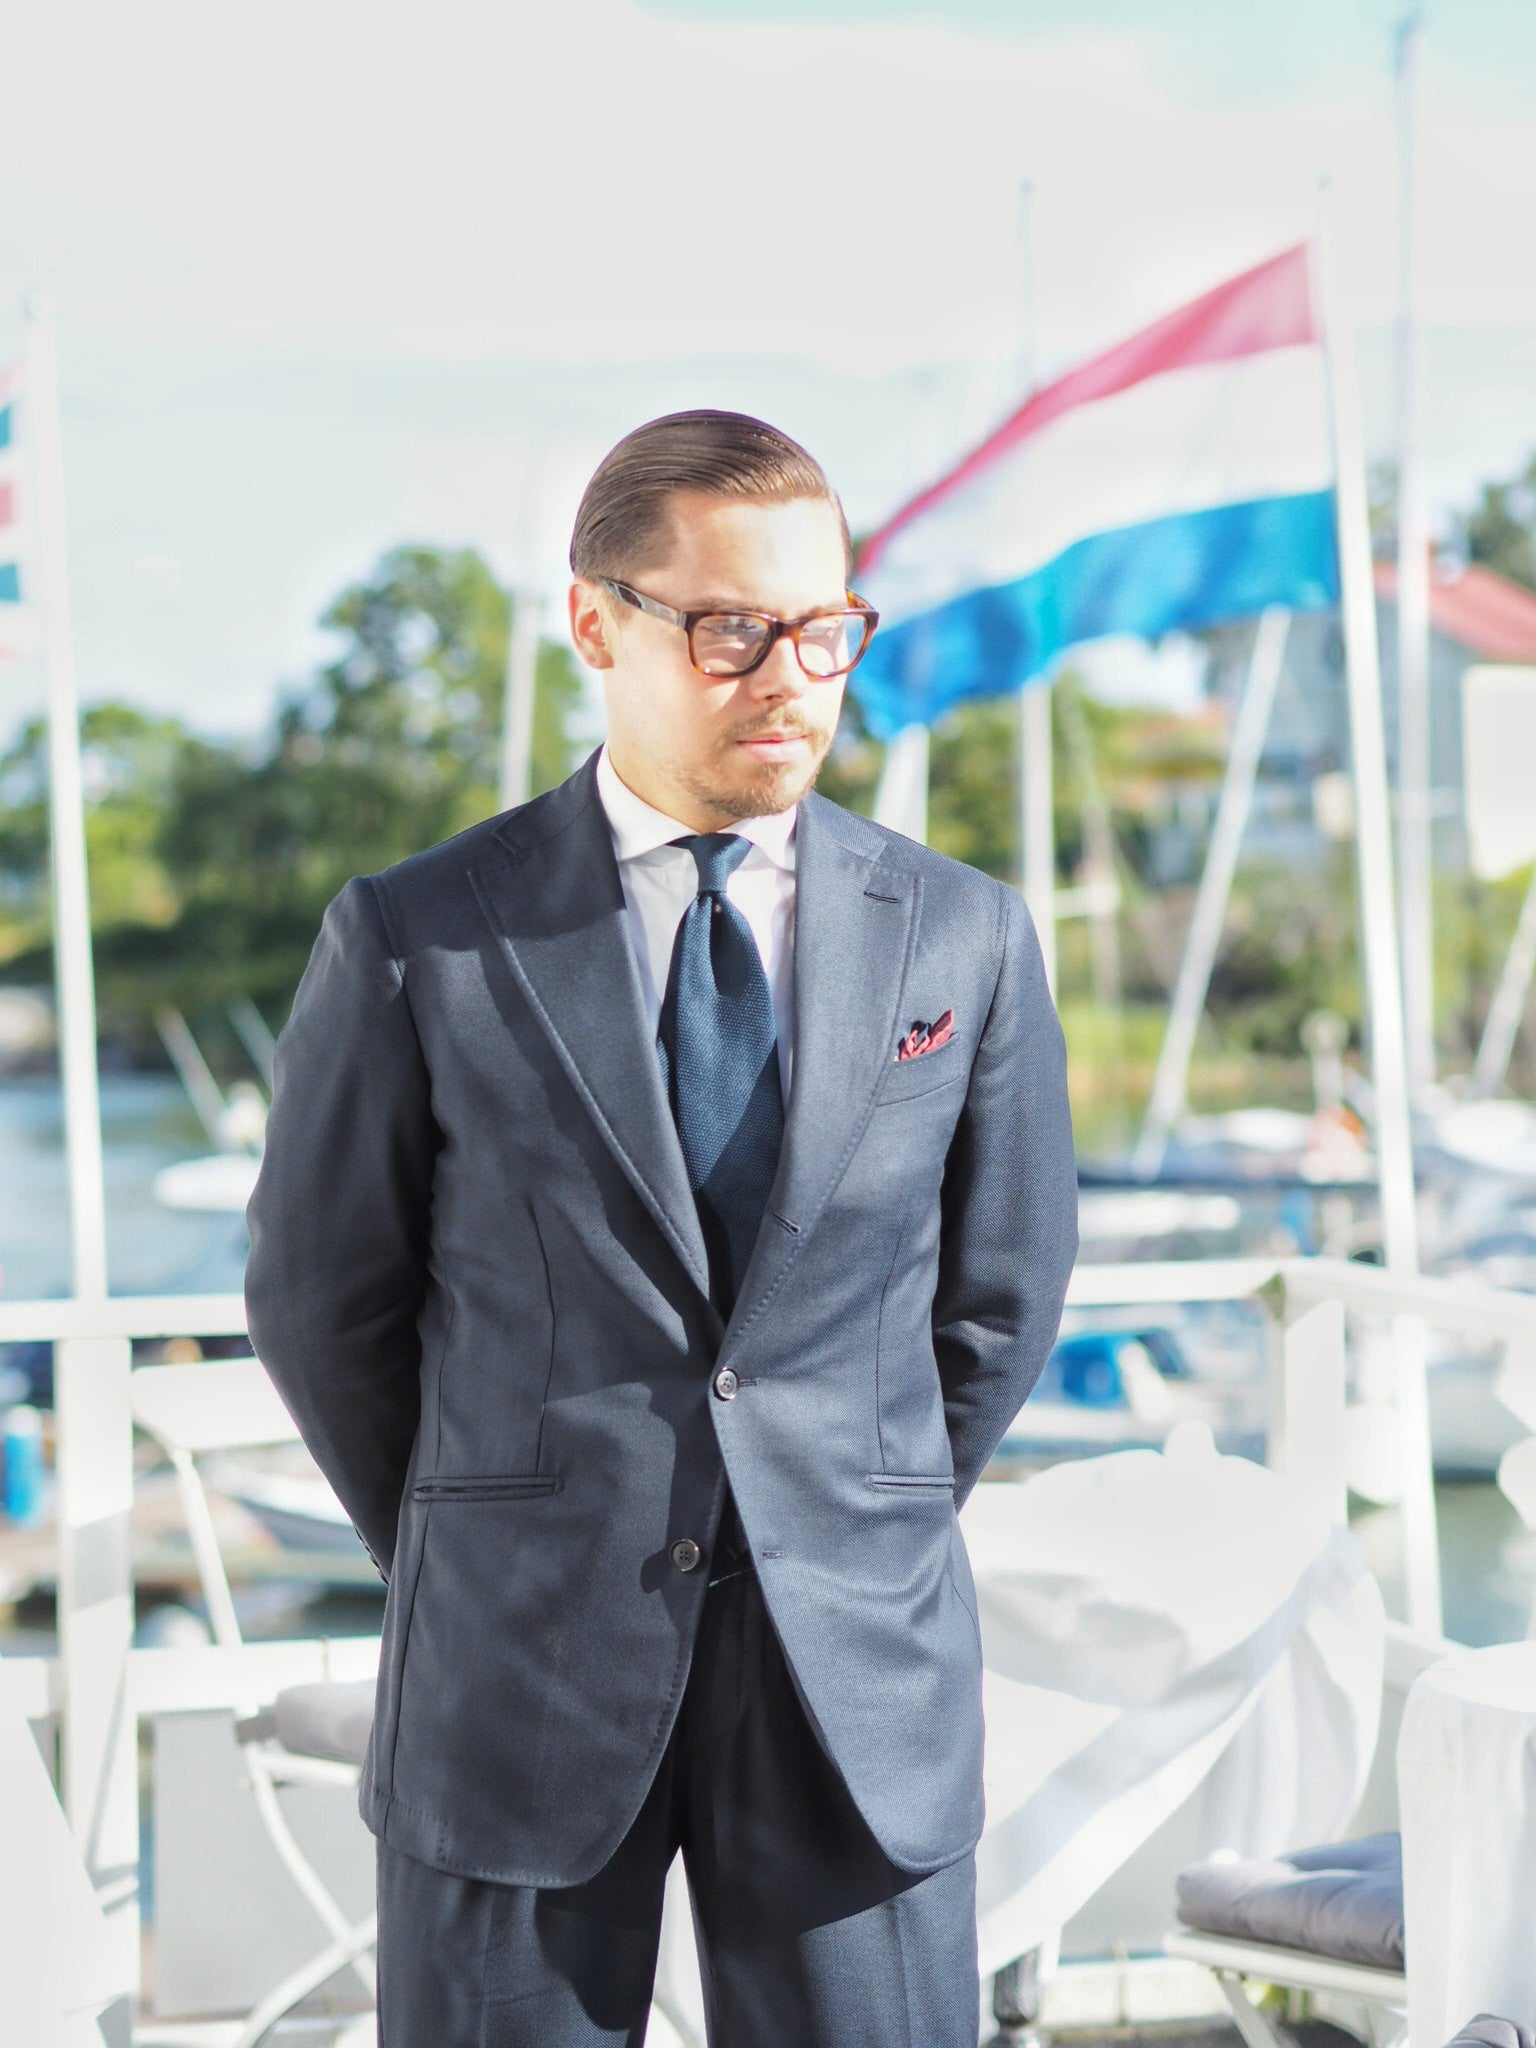 Blue suit for summer weddings party - Herrainpukimo mtm-suit with DLA navy blue grenadine tie and white DLA oxford shirt